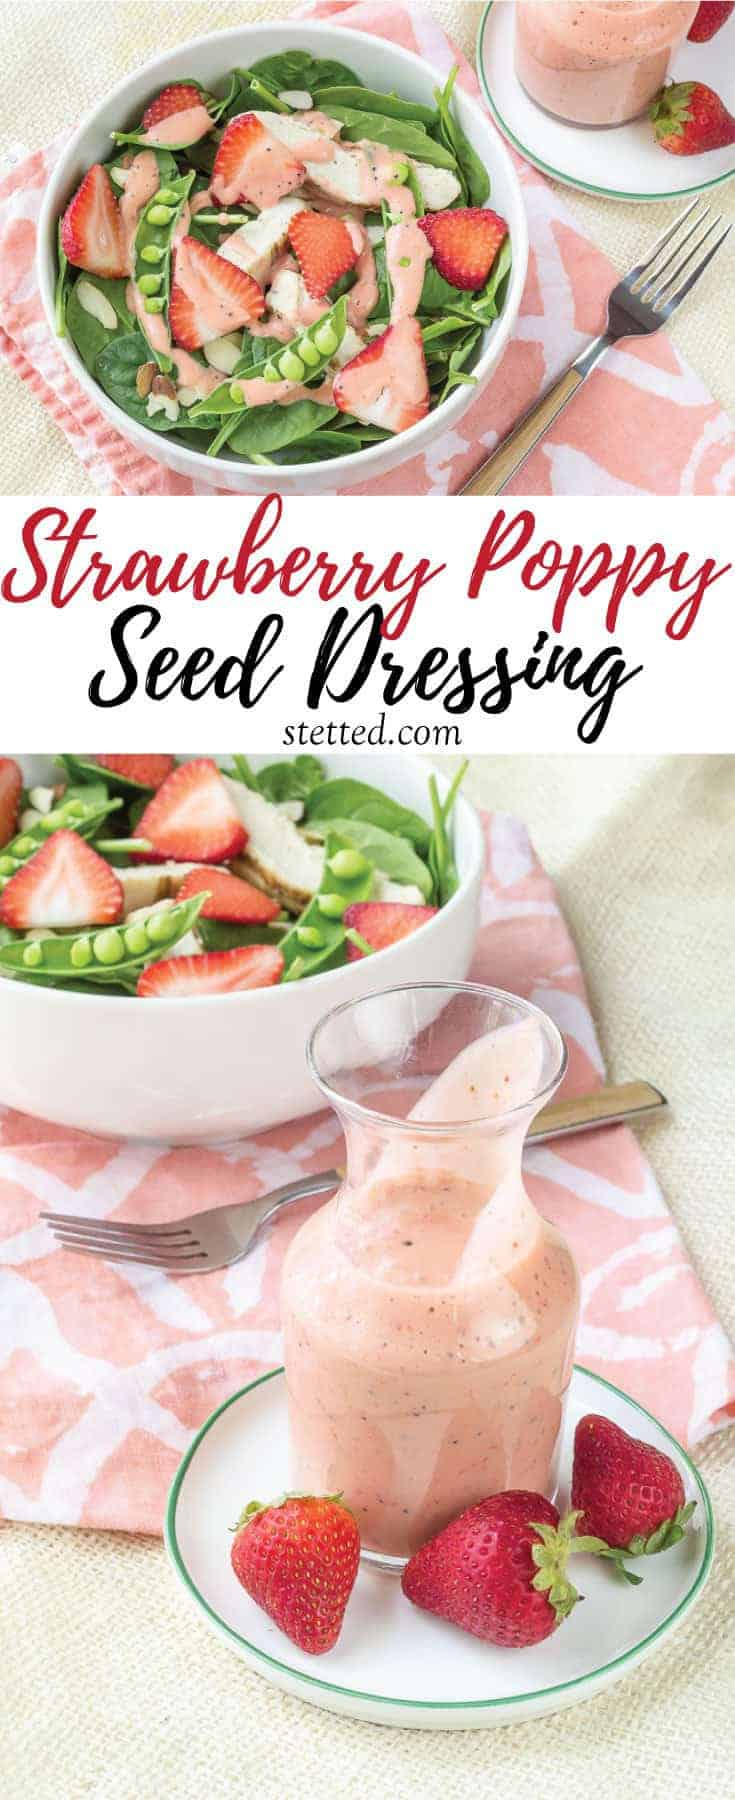 Creamy strawberry poppy seed dressing is a sweet, tangy way to top your salads during berry season.